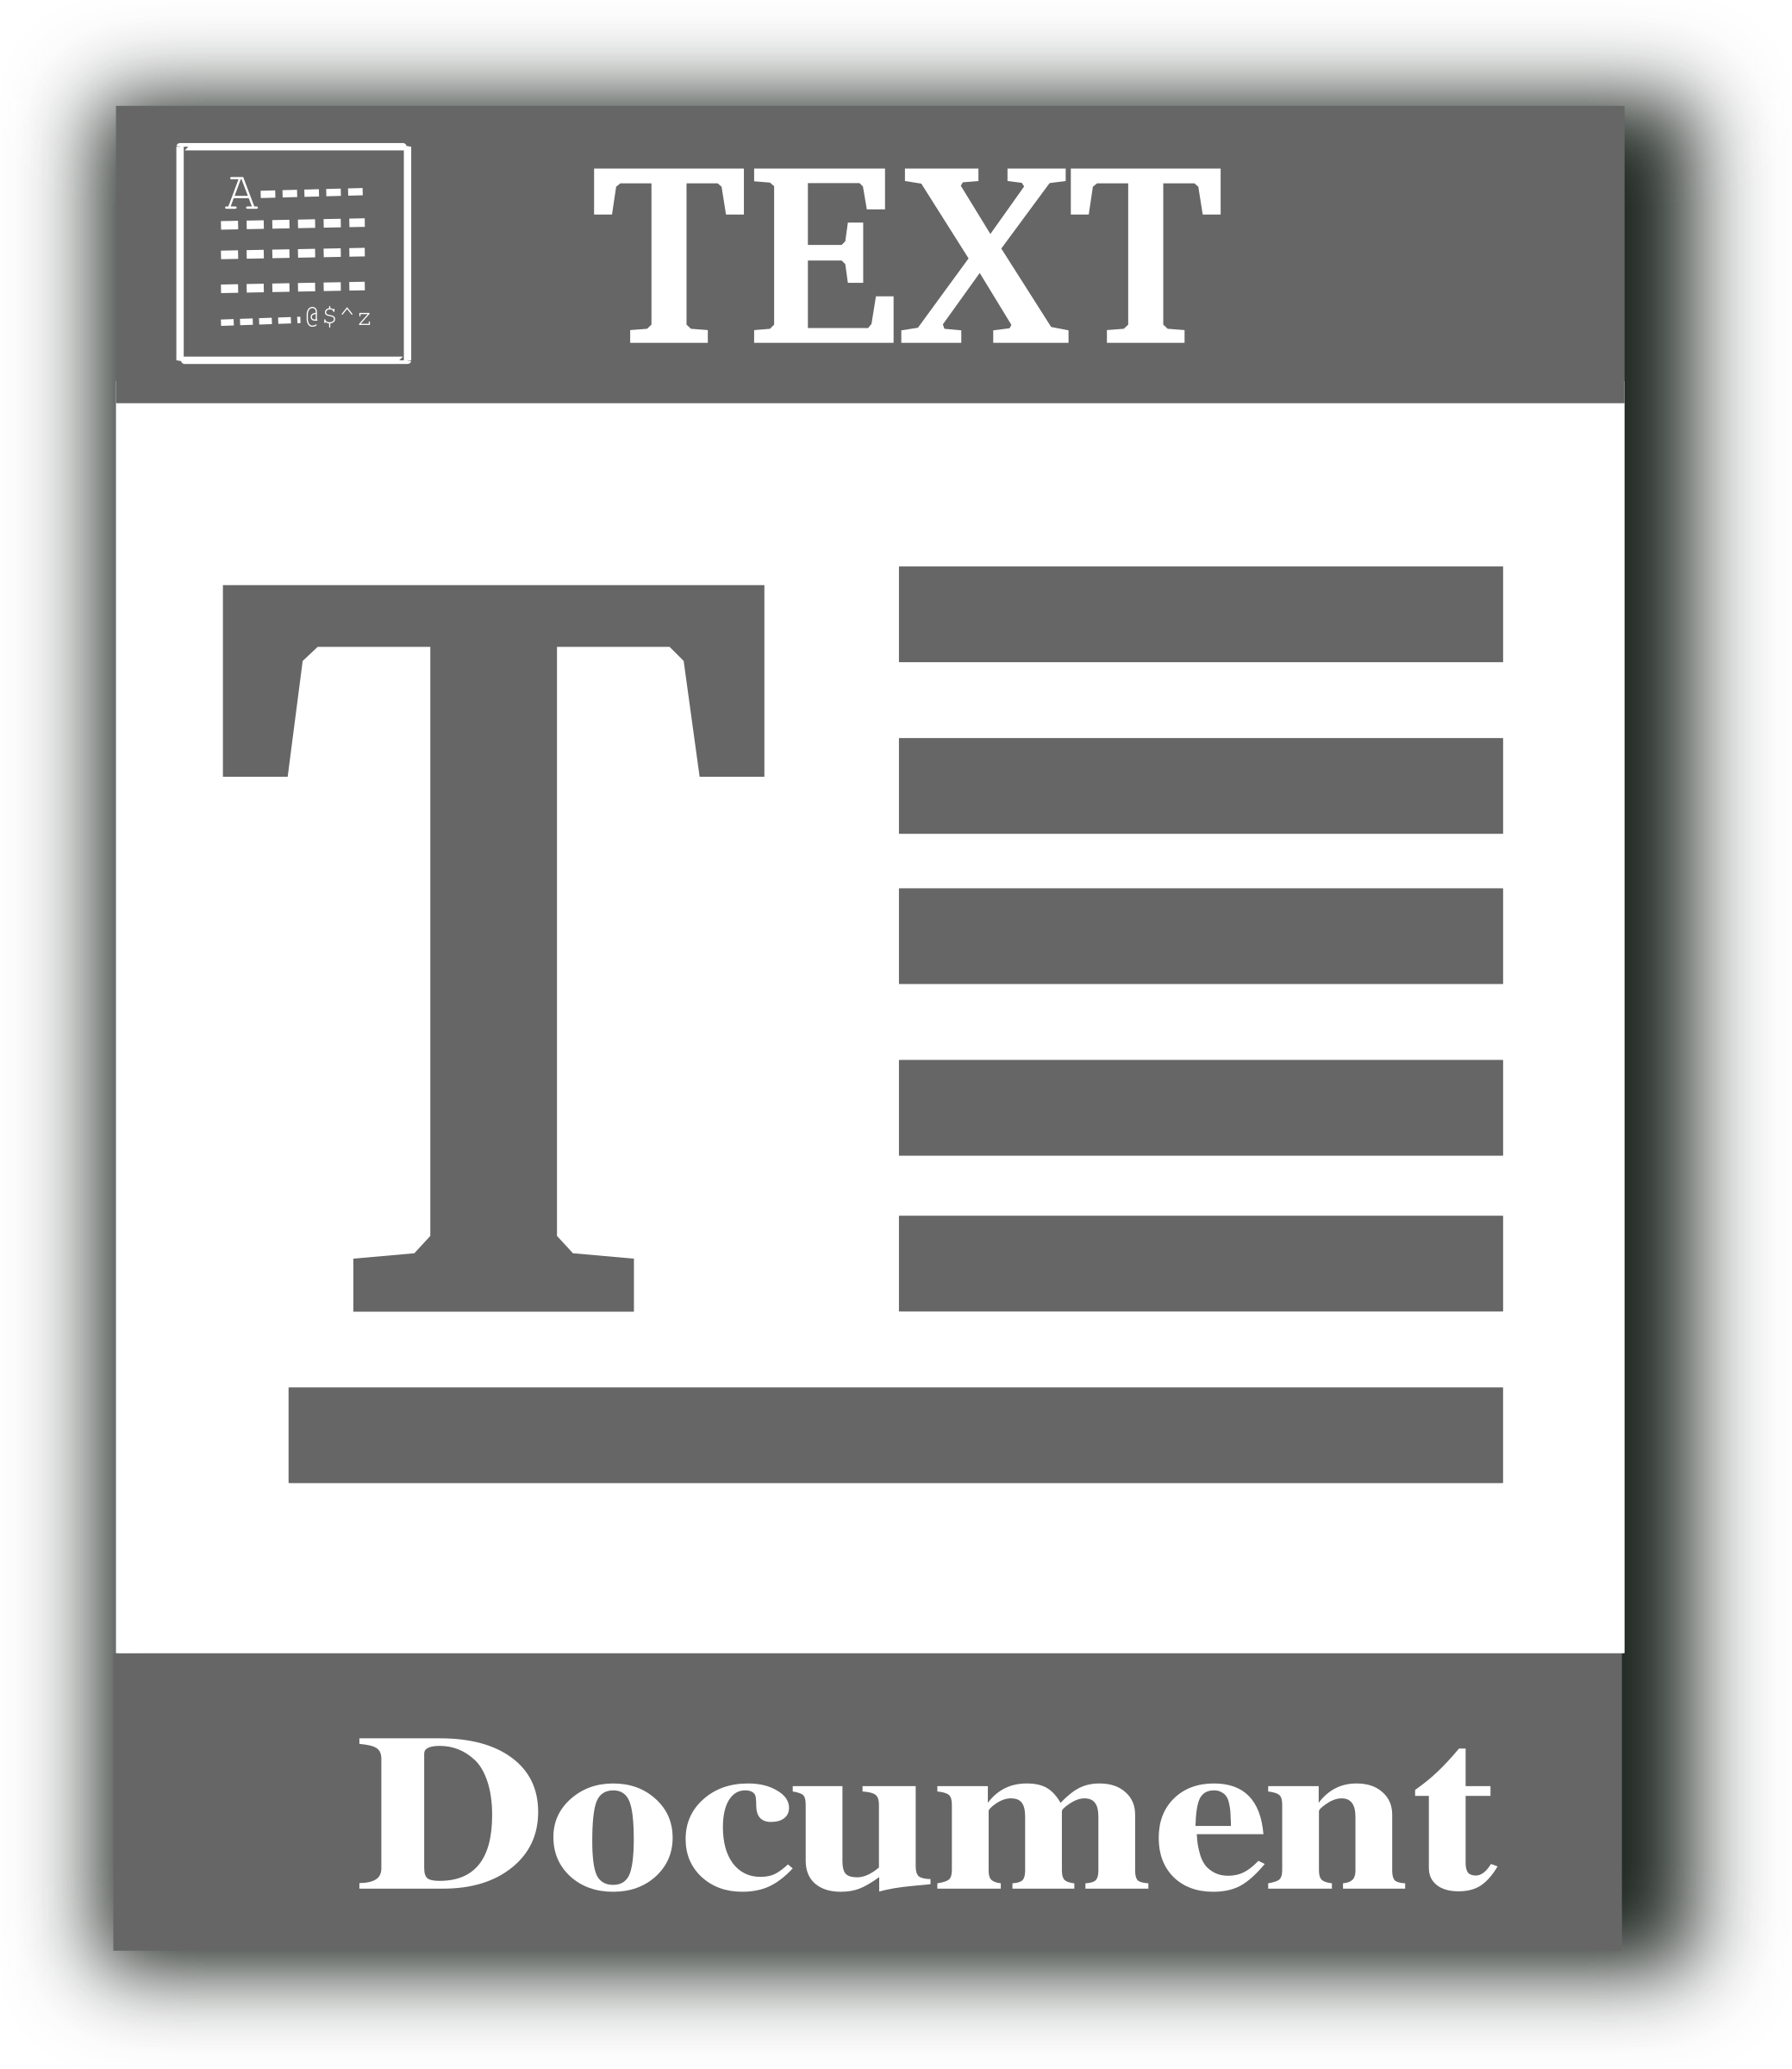 Text file icon by gsagri04